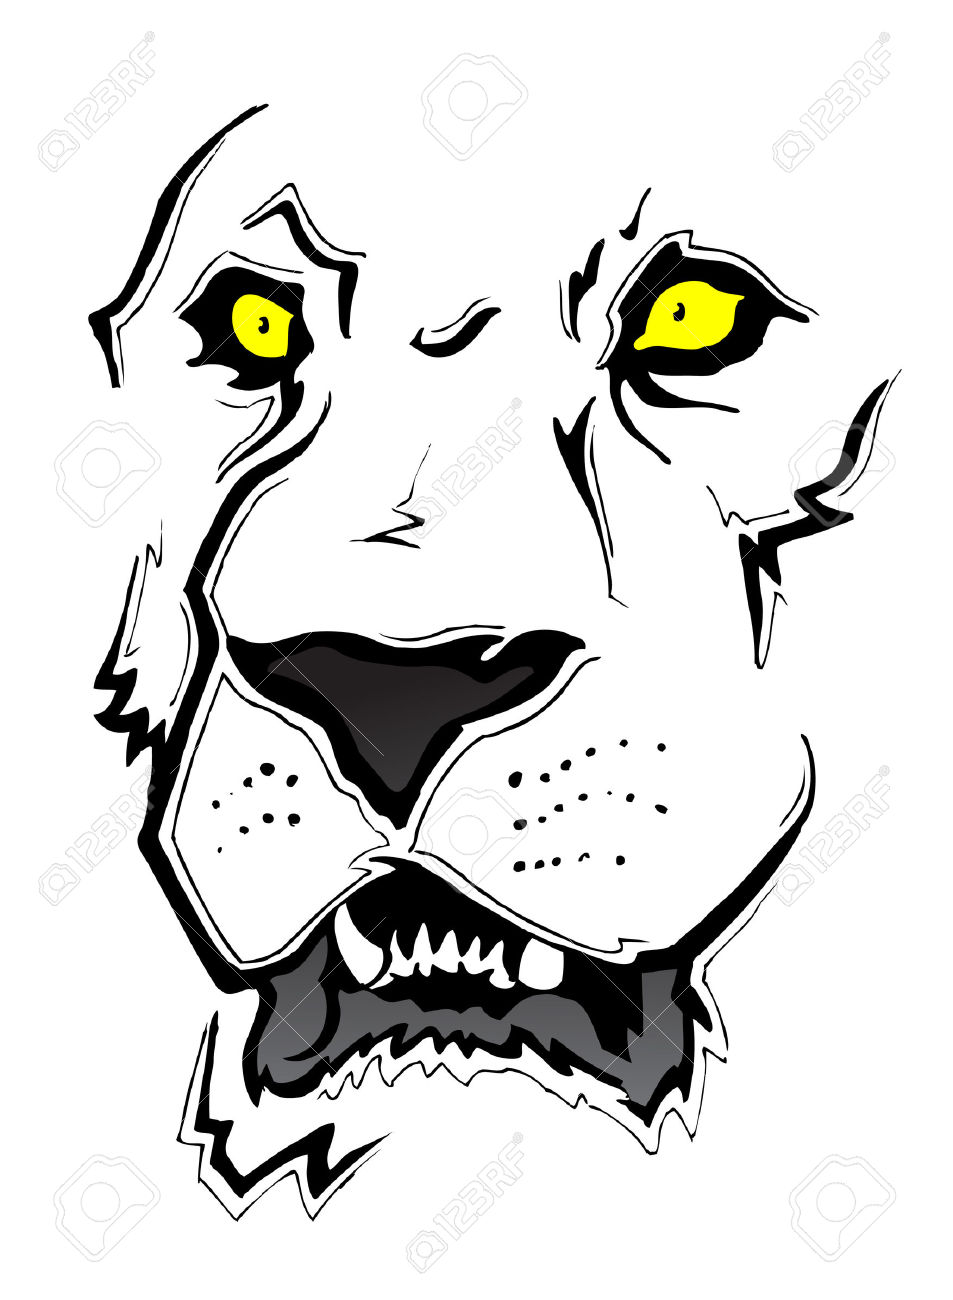 Lion Face Sketch Royalty Free Cliparts, Vectors, And Stock.